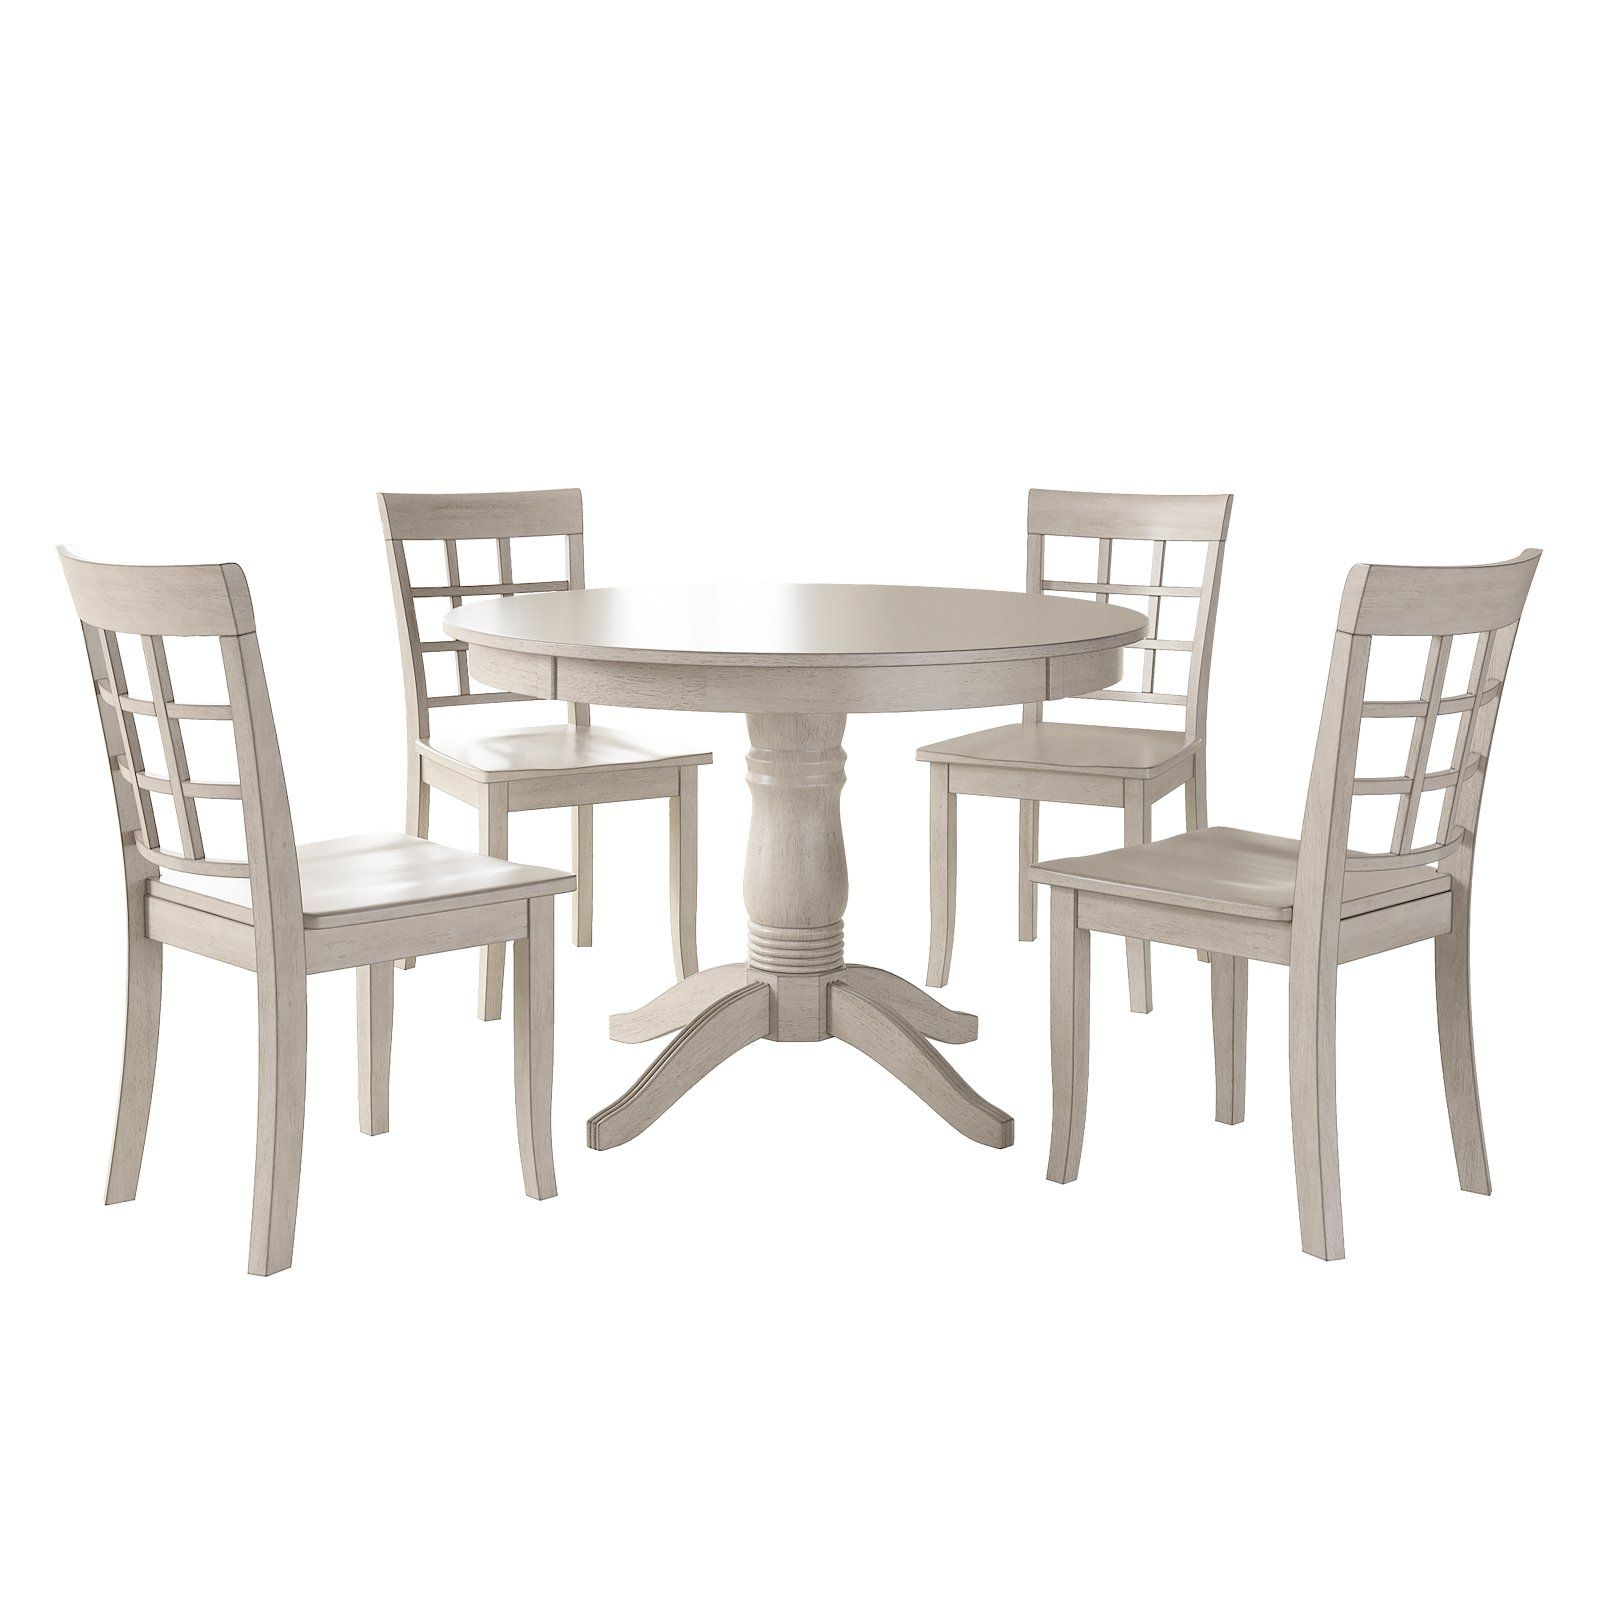 Weston Home Lexington 5 Piece Round Dining Table Set With Window Back Chairs Antique White Round Dining Table Sets